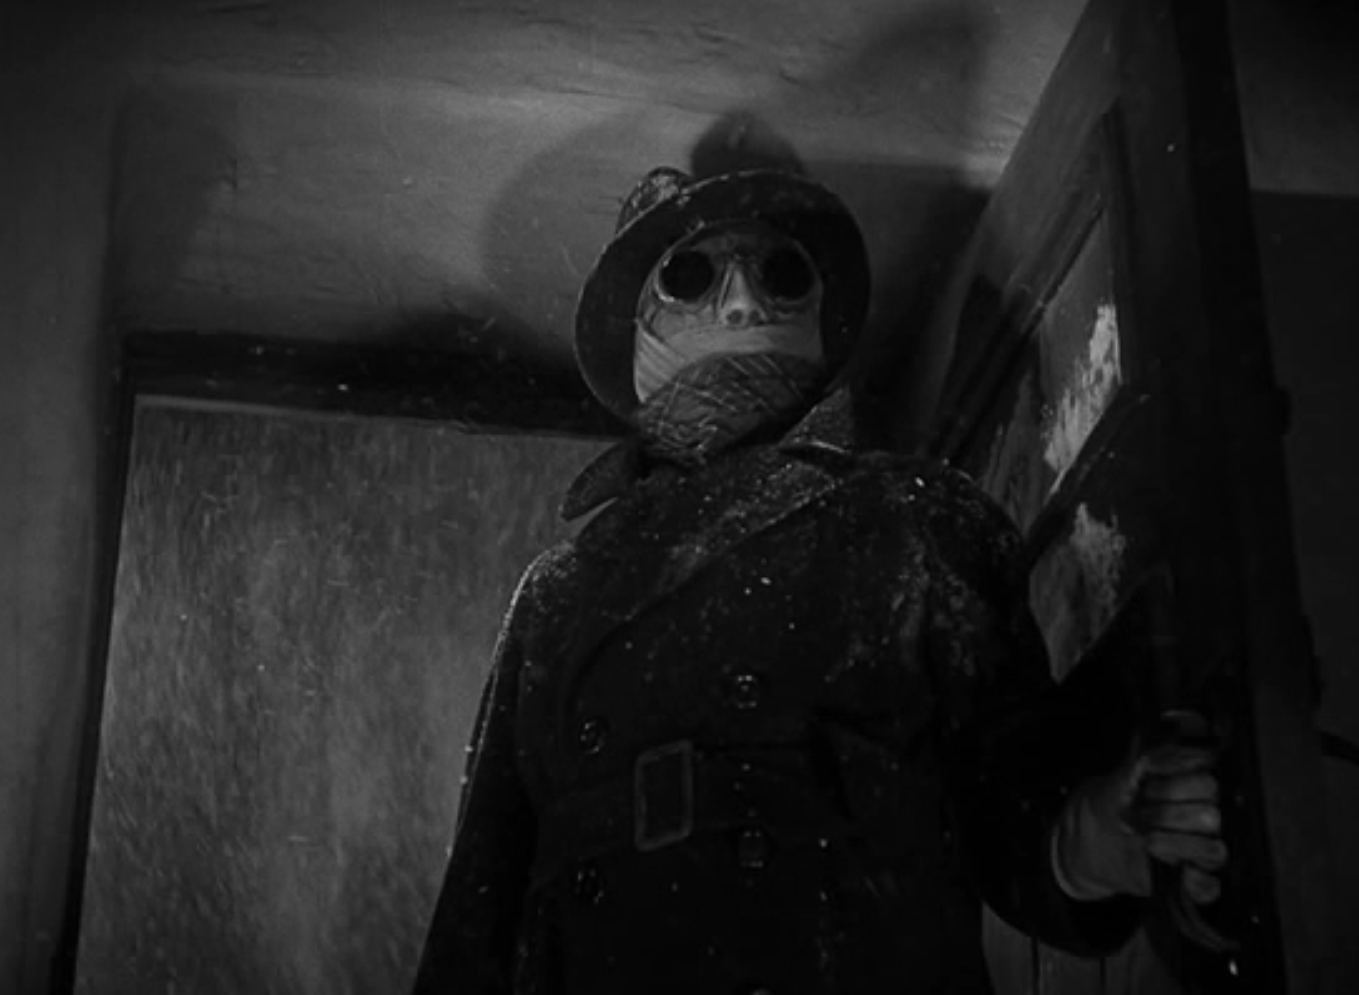 the invisible man review claude rains and gloria invisible man 1933 pre code universal horror